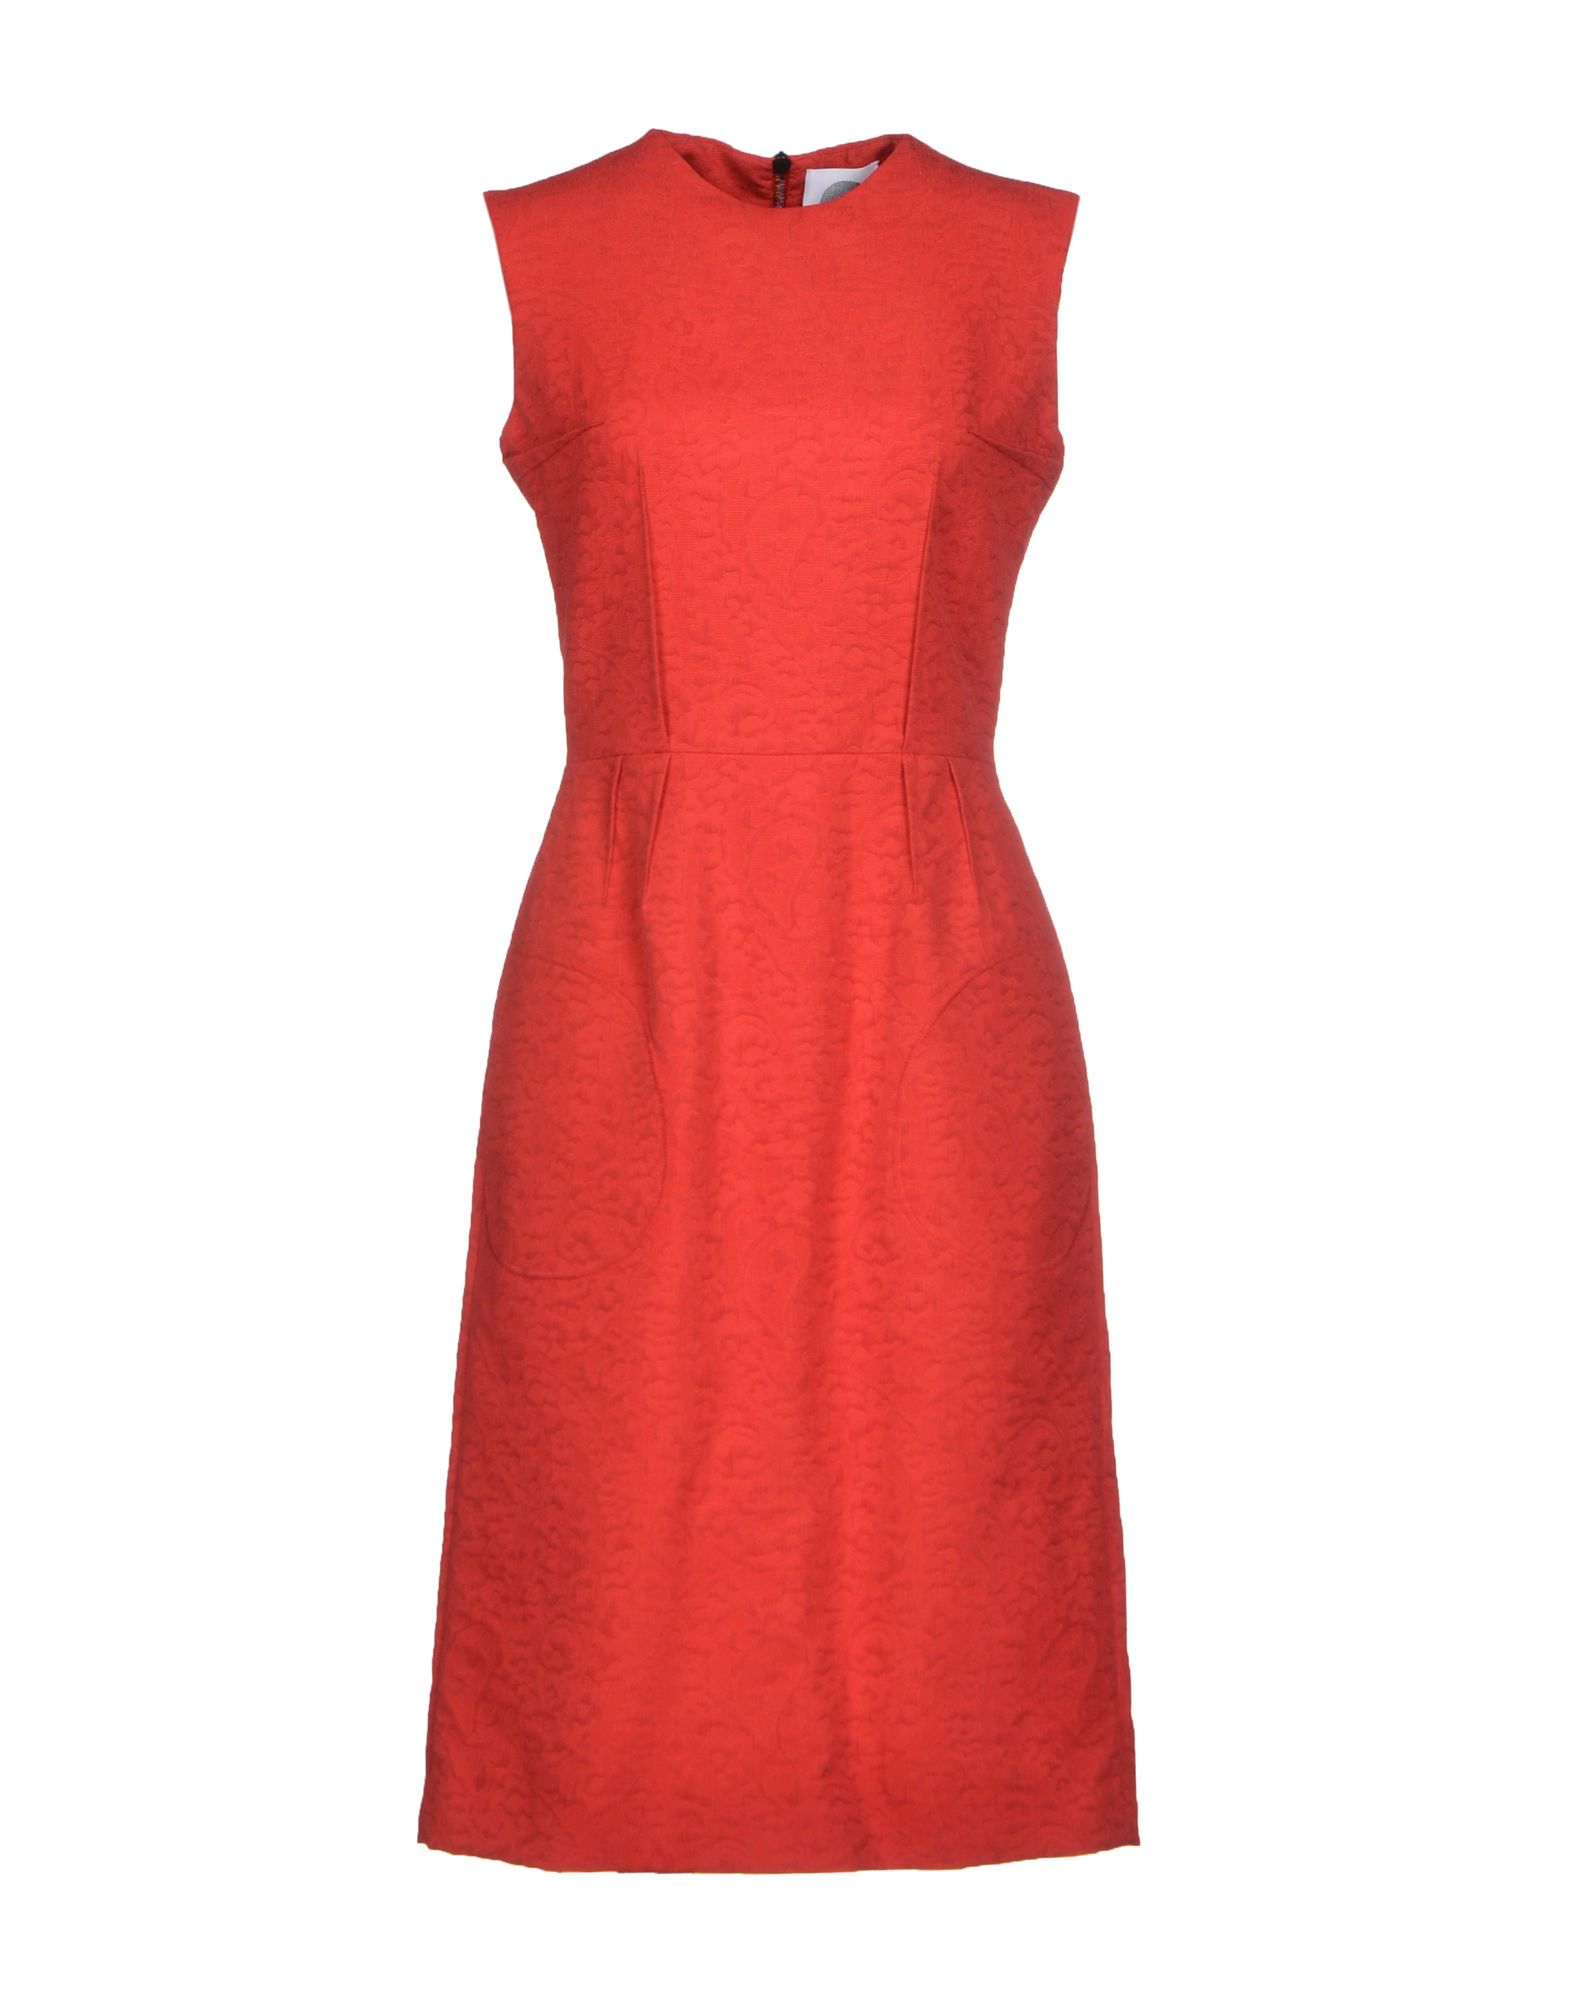 aganovich red knee length dress formal dresses product 1 24884274 1 452782370 normal